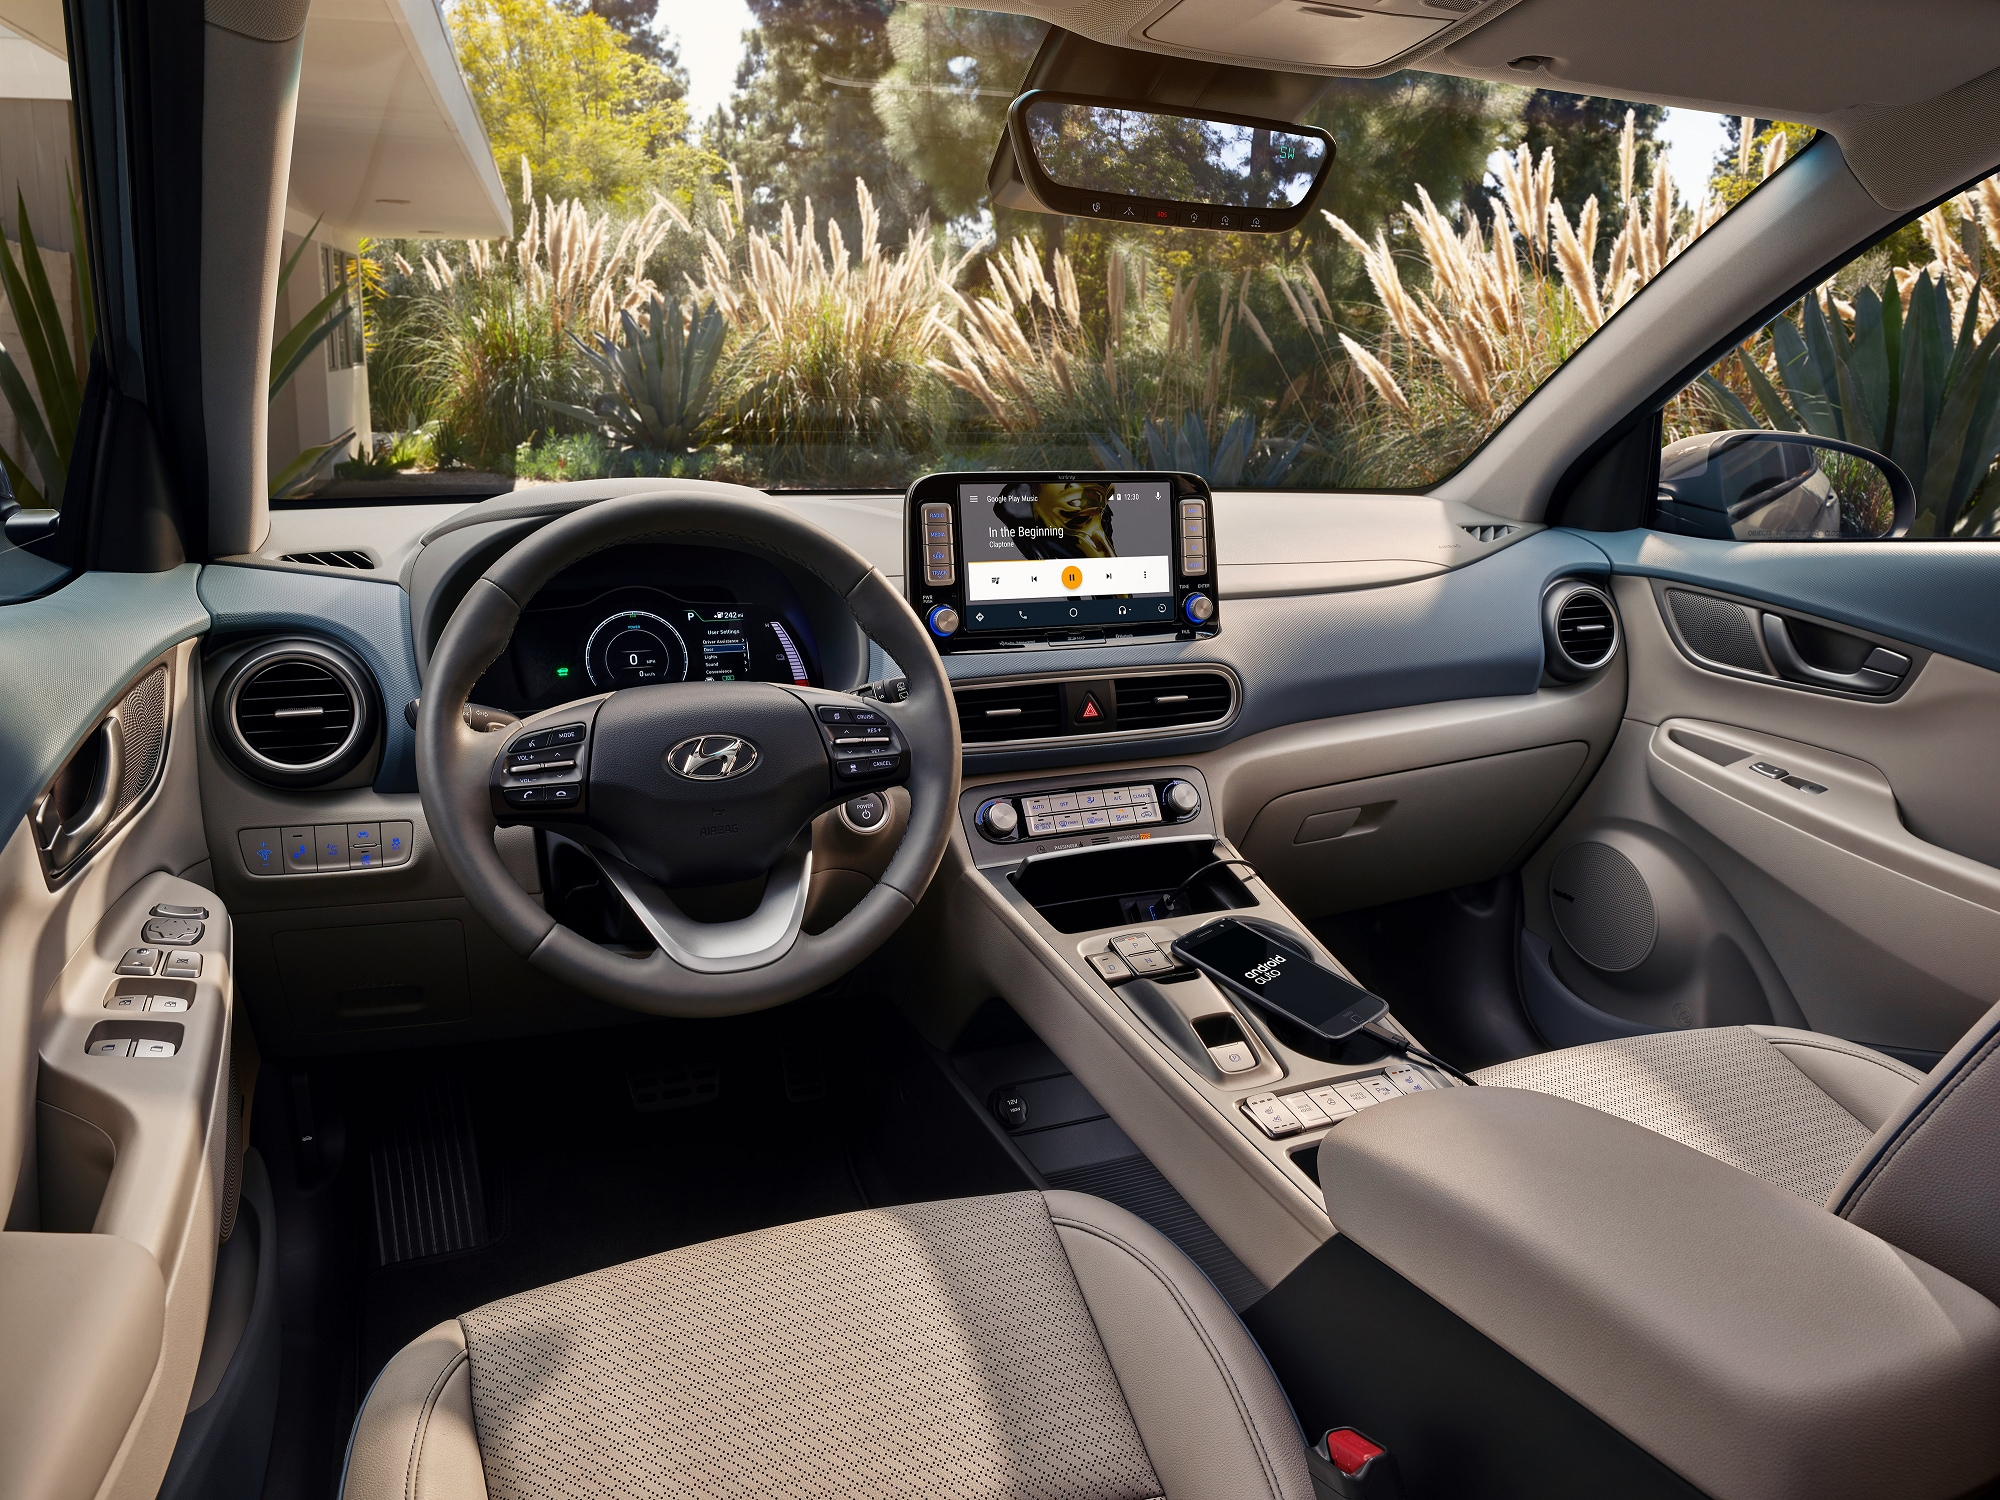 New Hyundai Kona EV Interior